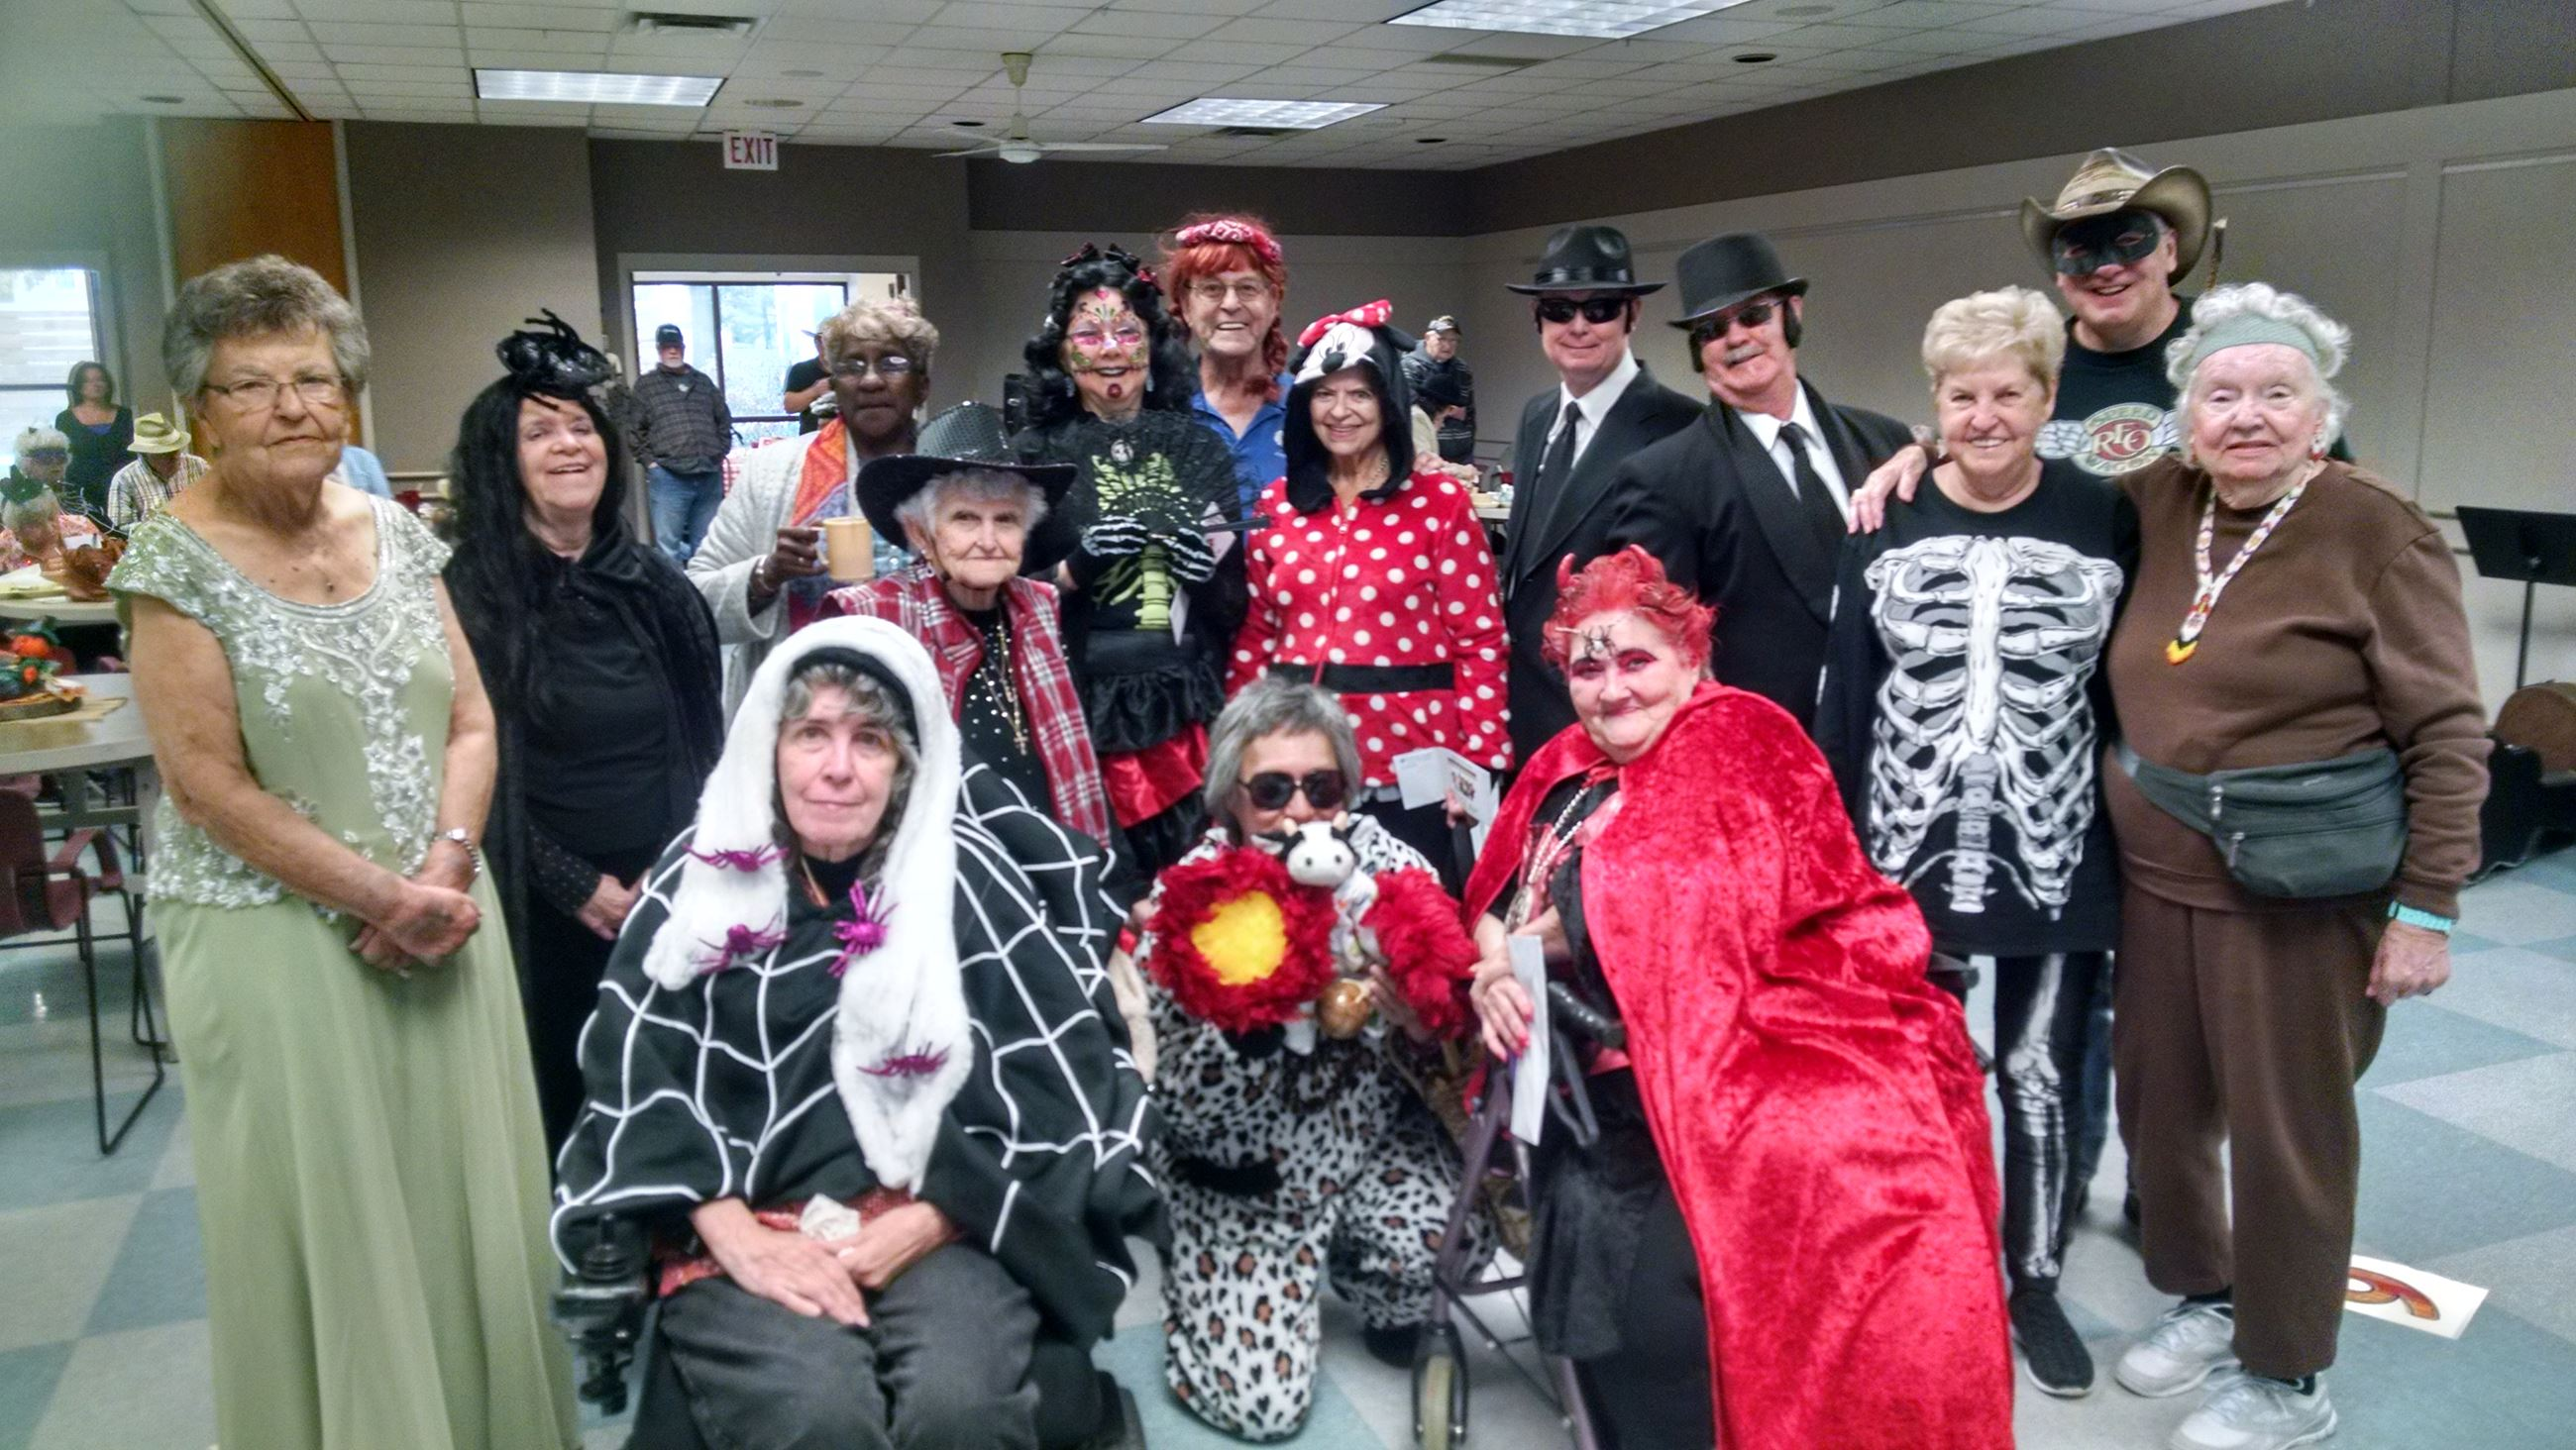 Vesper Hall Halloween group photo